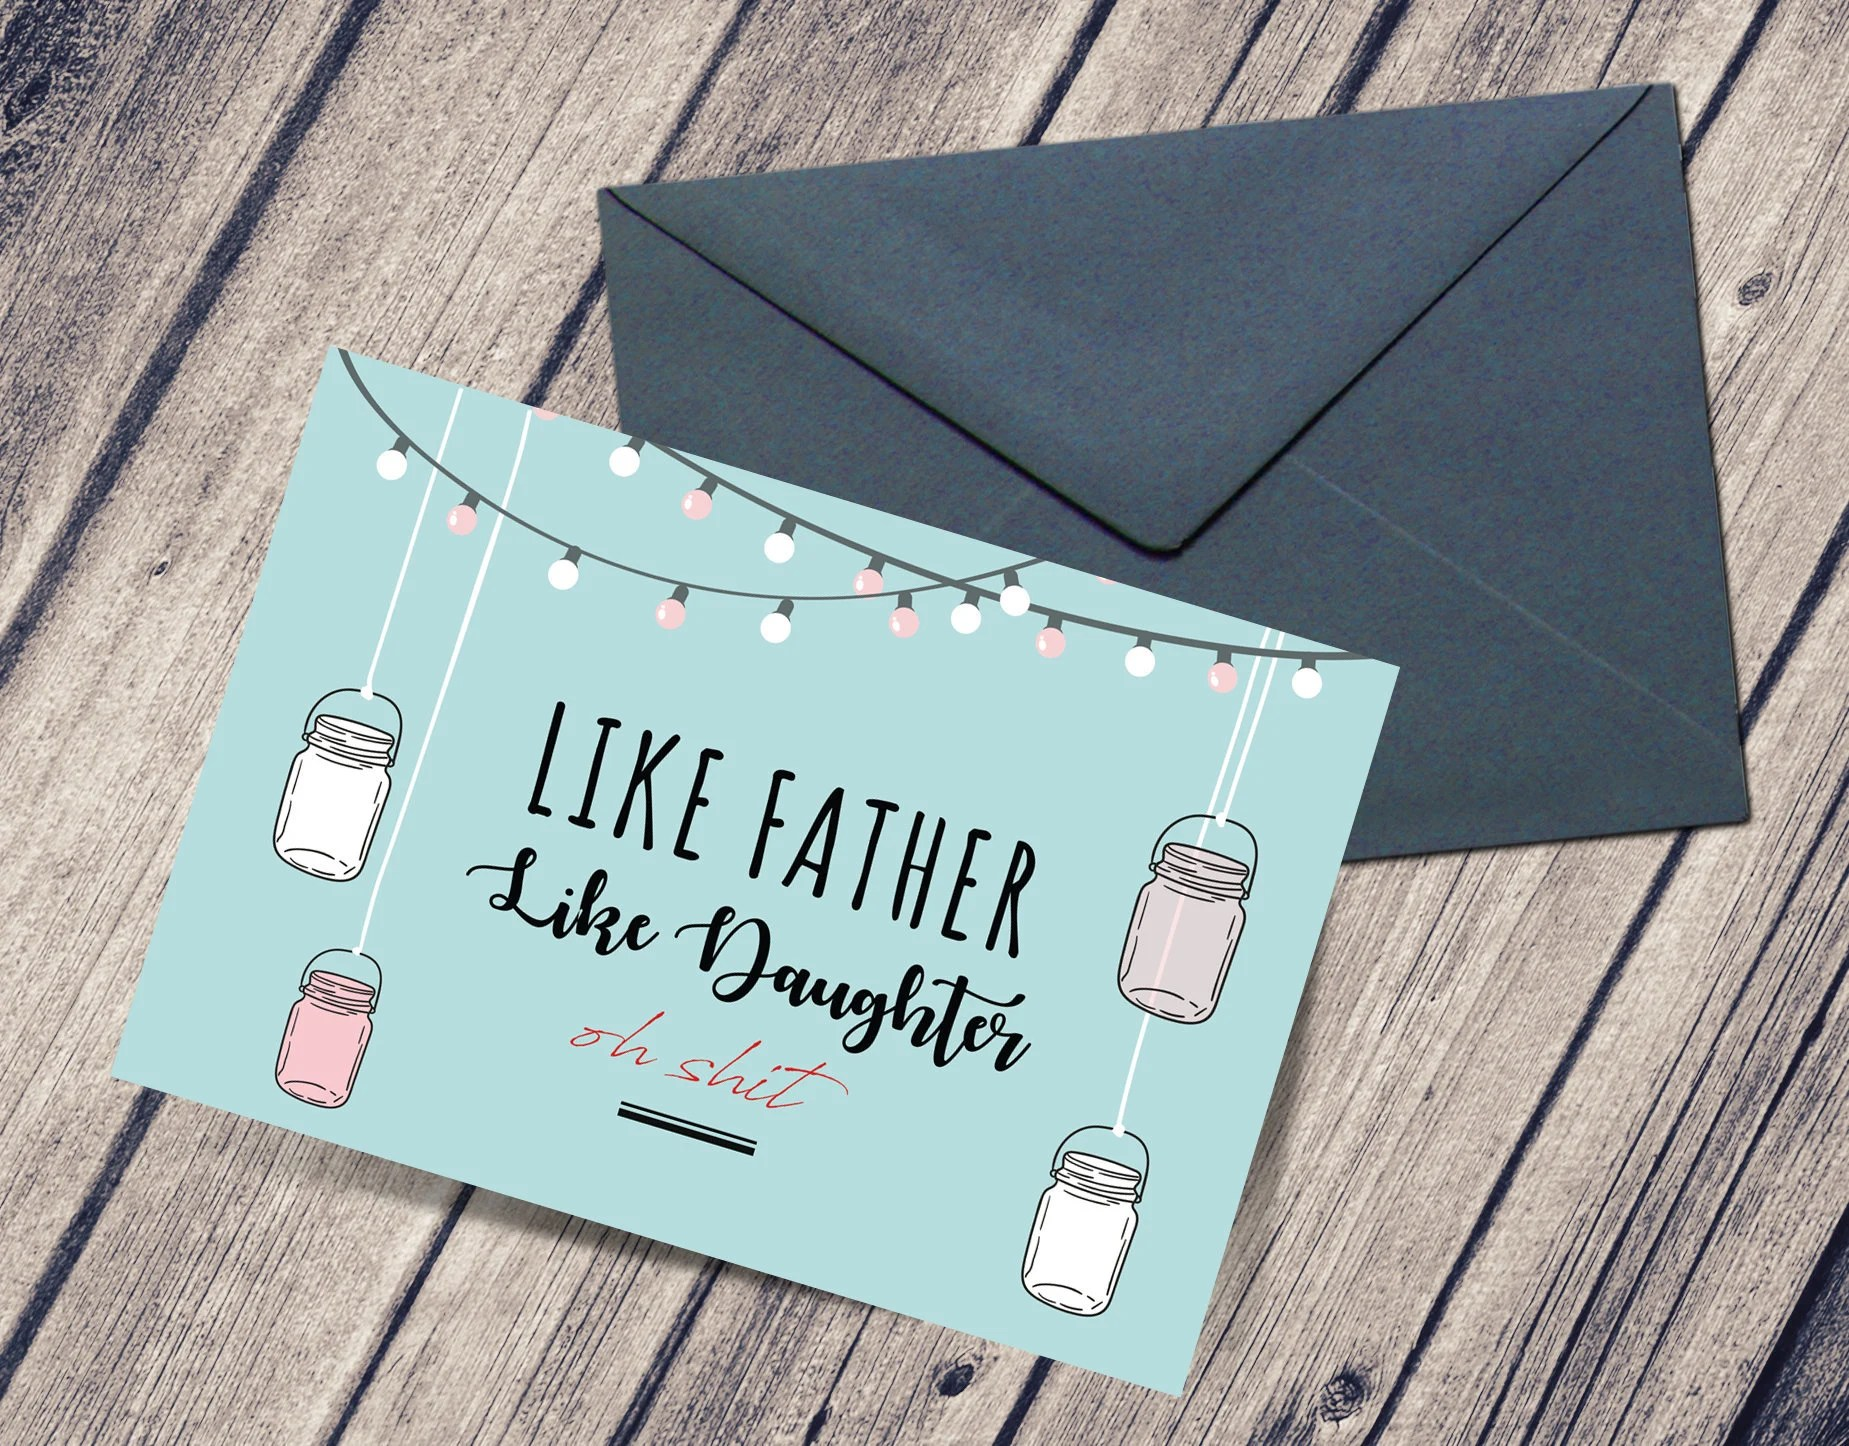 Funny Father\u0027s Day Card - From Daughter - Like Father Like Daughter Card -  Printable - Card For Dad - Swear - Cute Dad Gift Download PDF